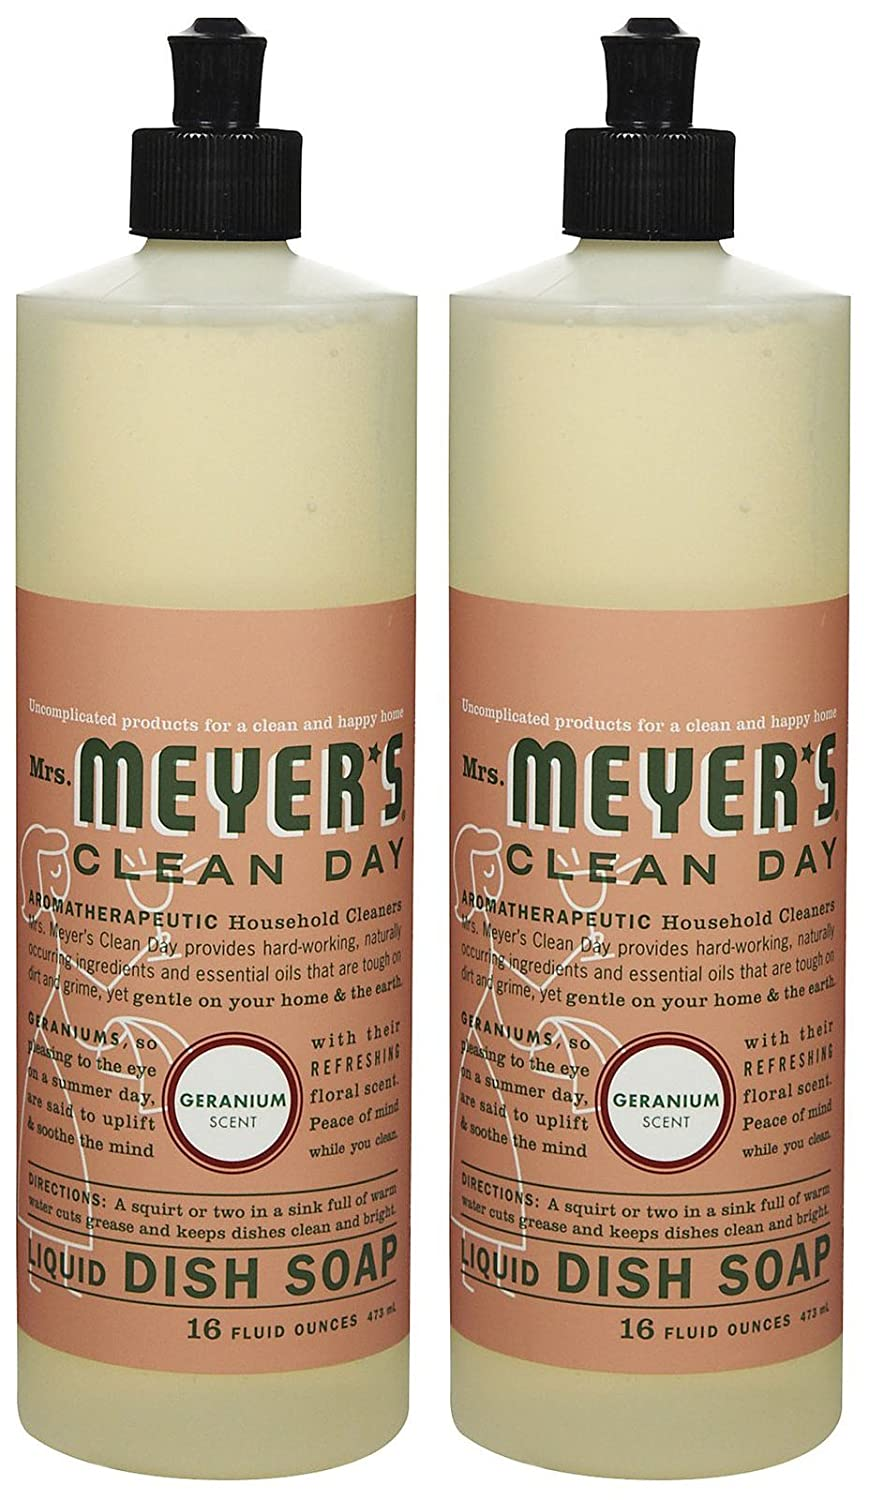 Mrs. Meyer's Clean Day Liquid Dish Soap, Geranium, 16oz, 2pk Mrs. Meyer' s Clean Day 13103